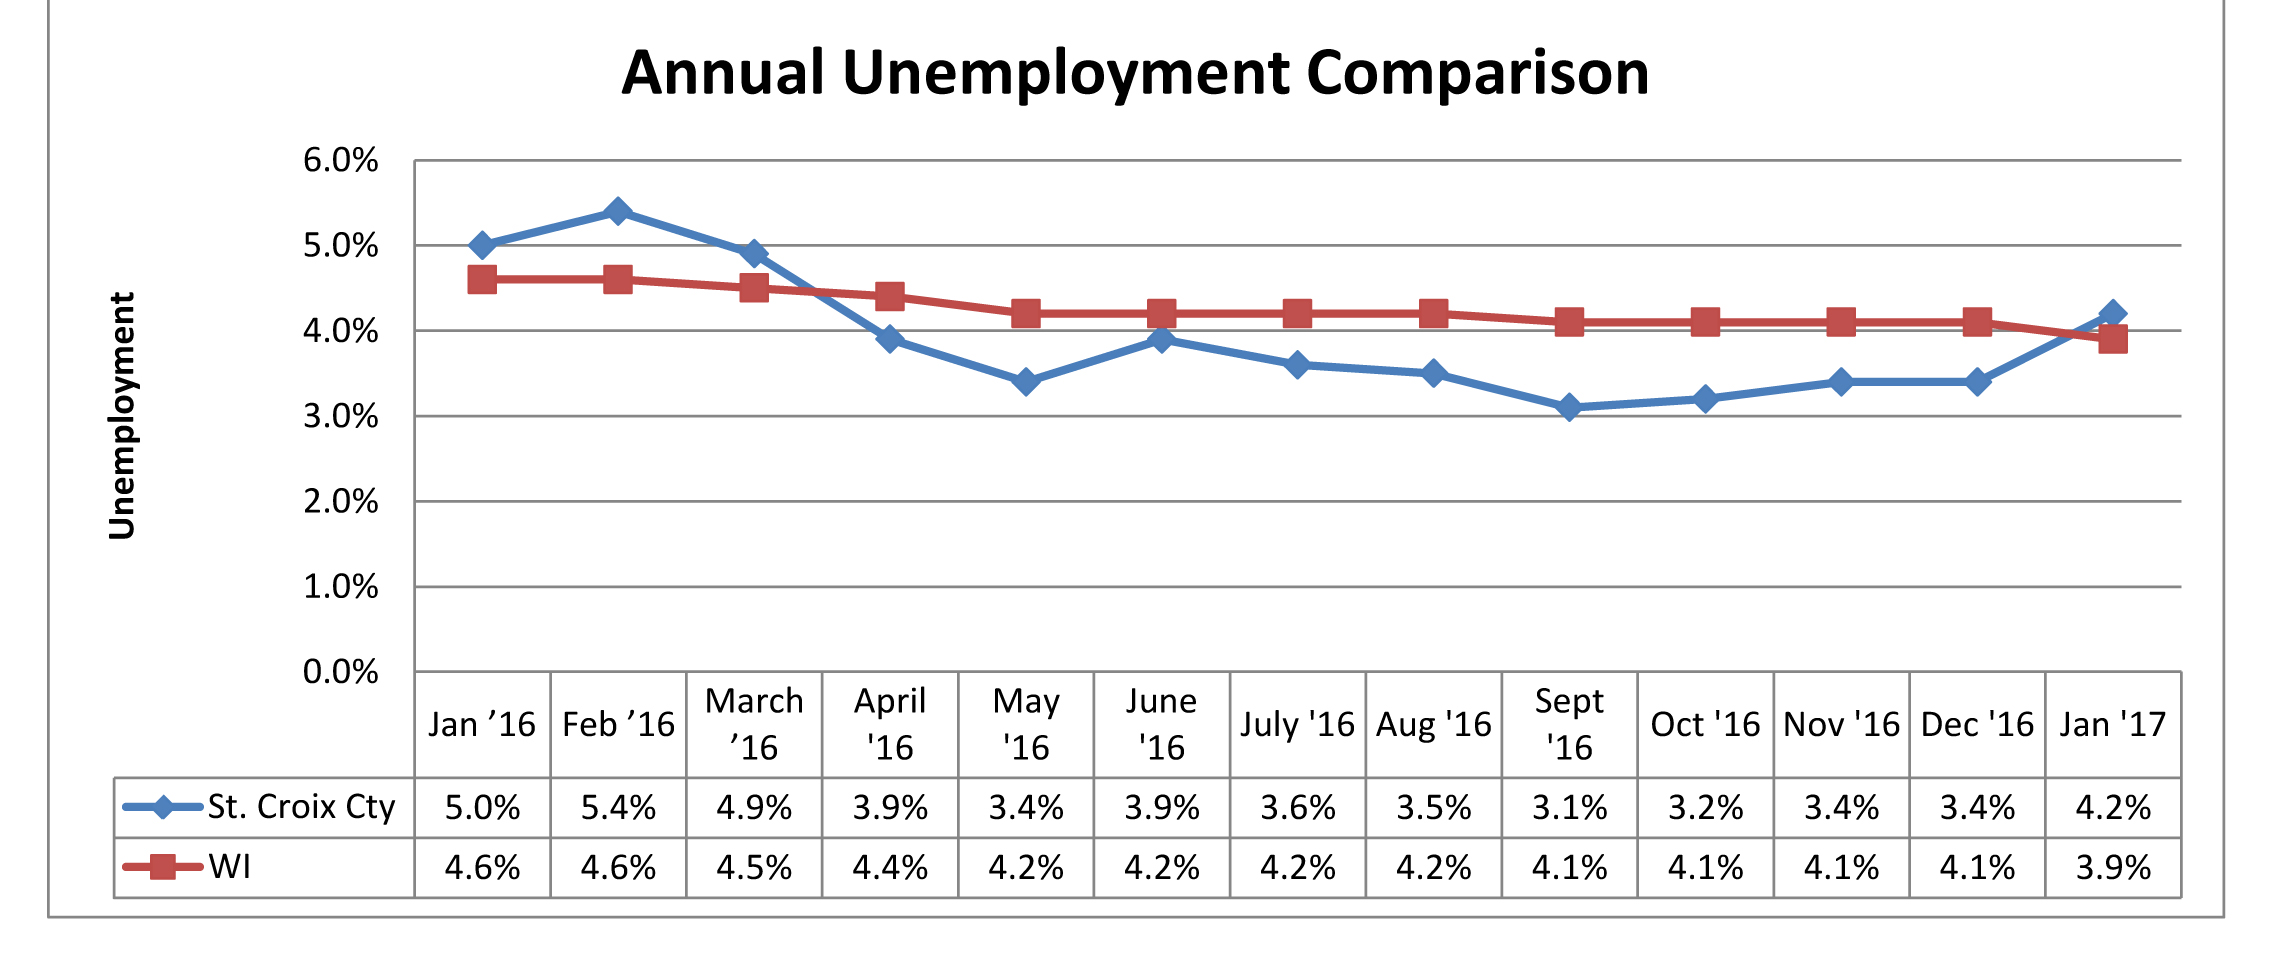 Annual Unemployment Comparison January 2017